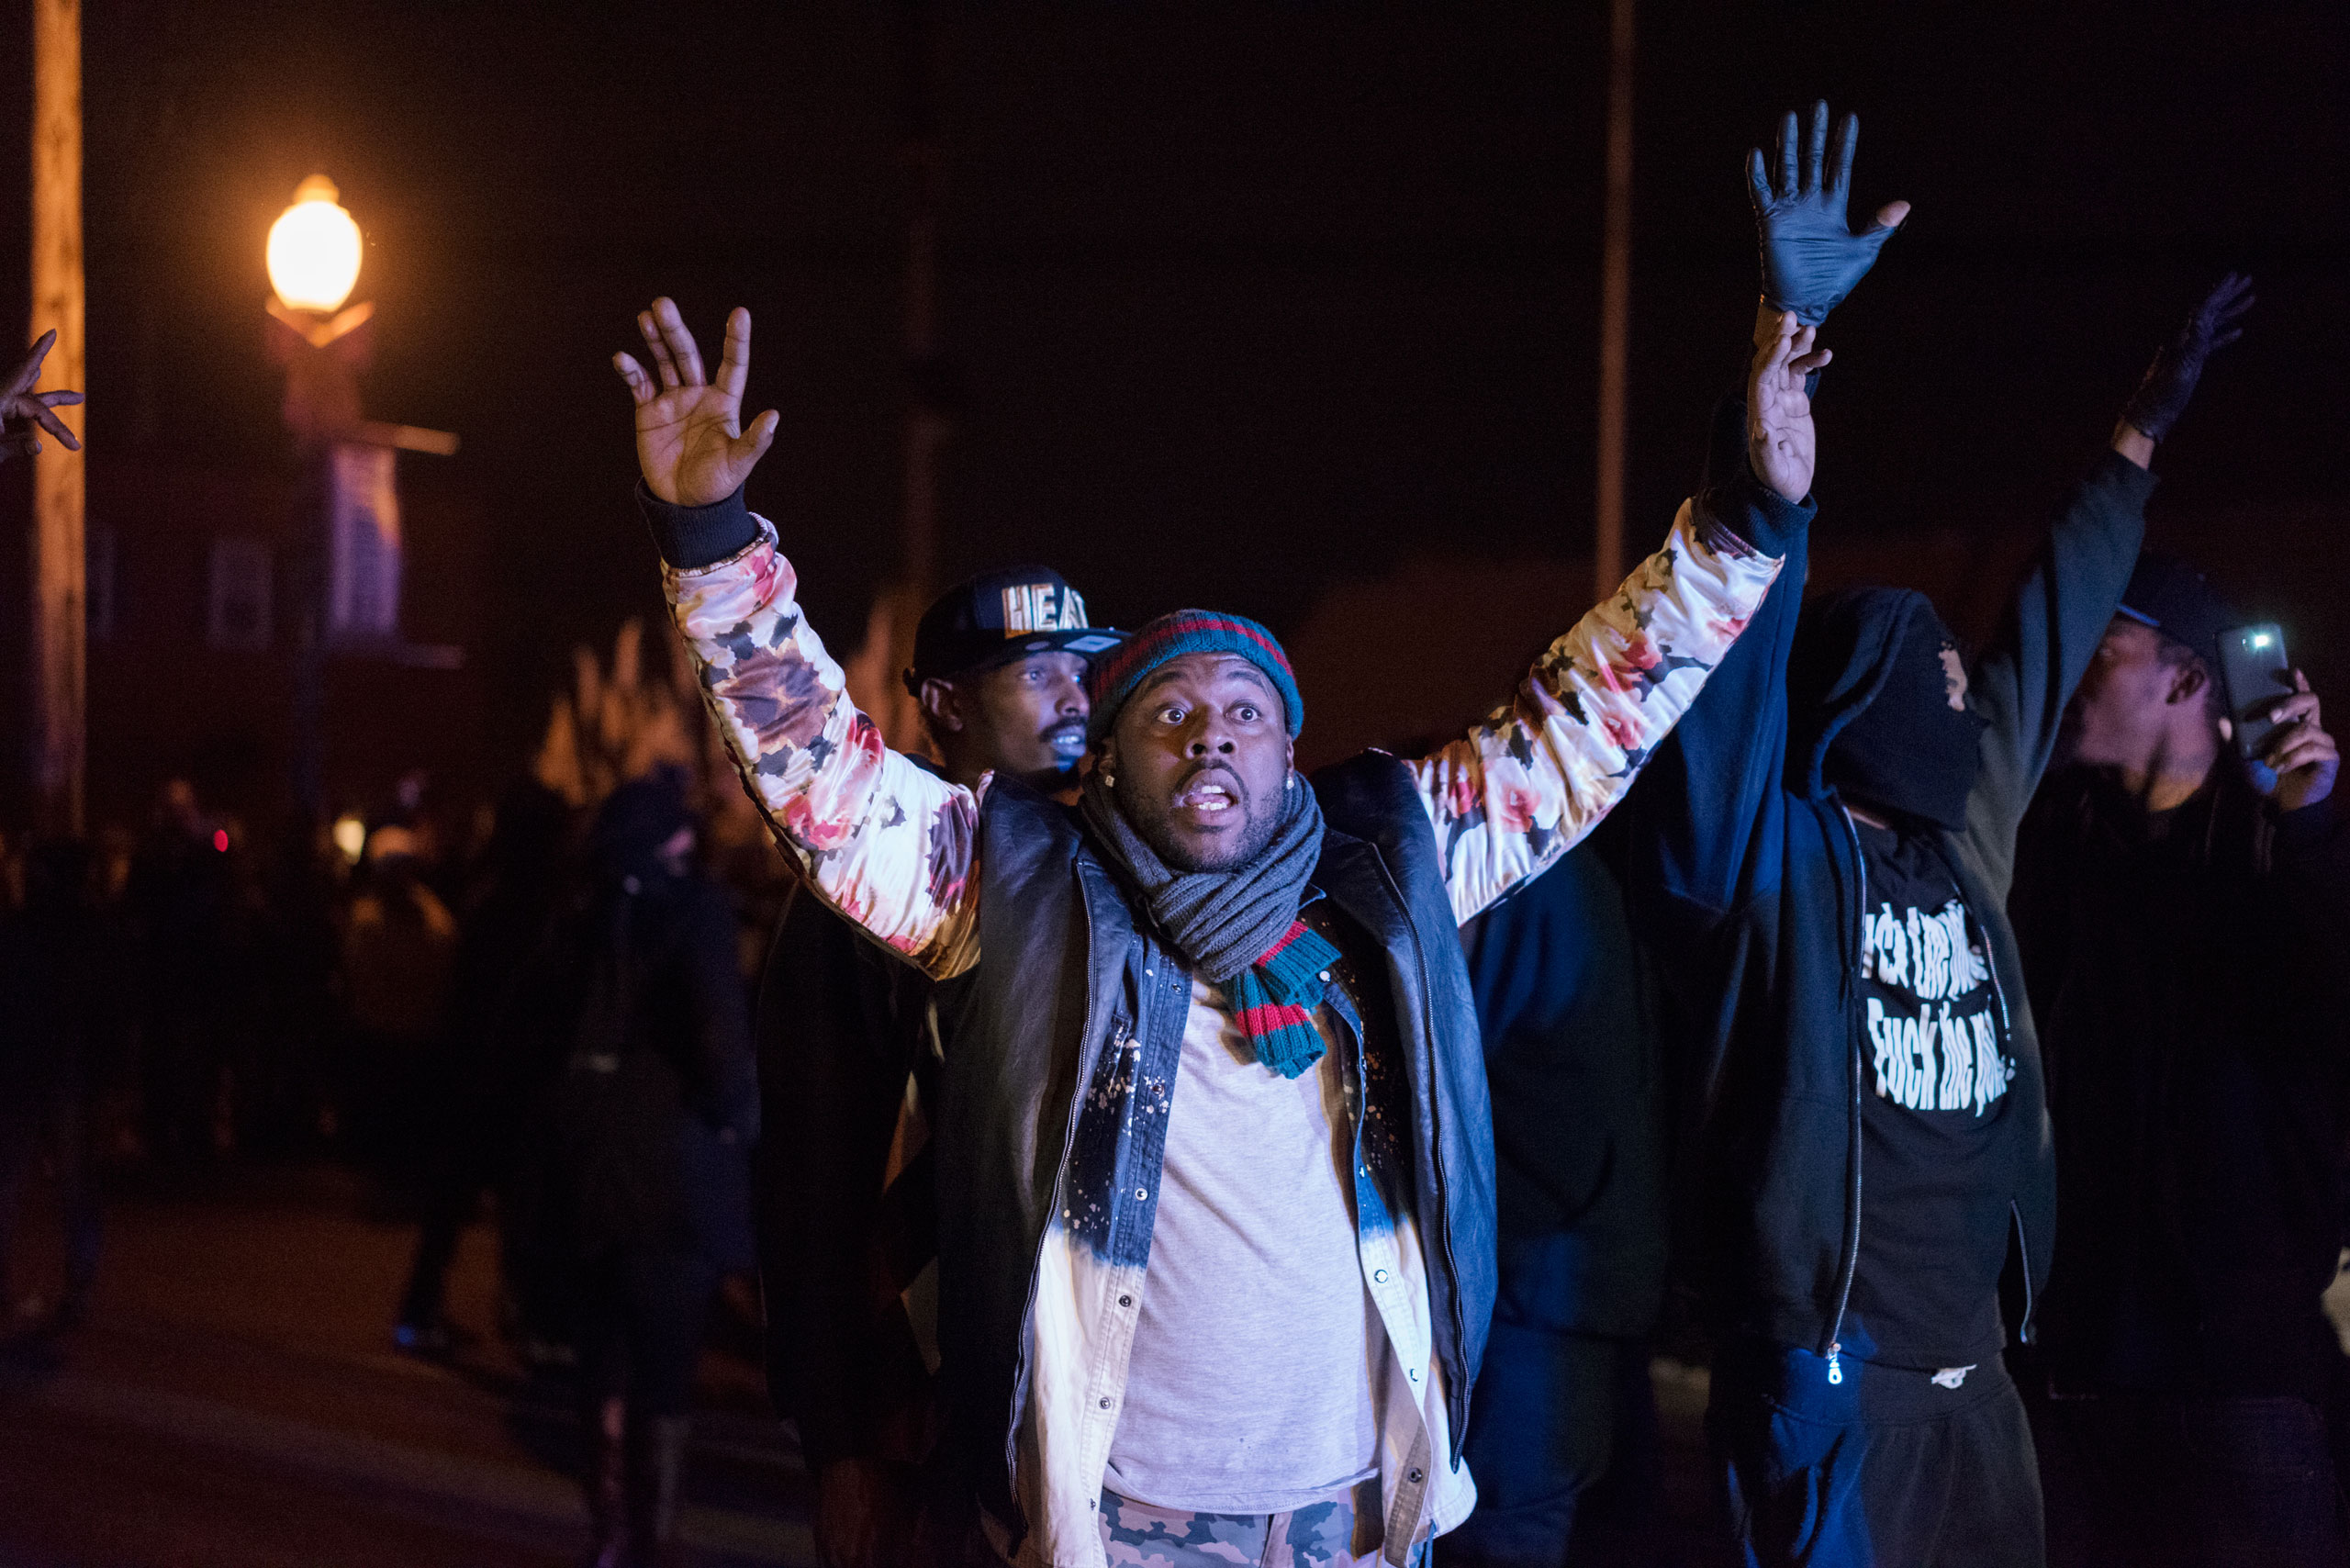 A demonstrator puts his hands in the air amid protests in Ferguson, Mo. on Nov. 24, 2014